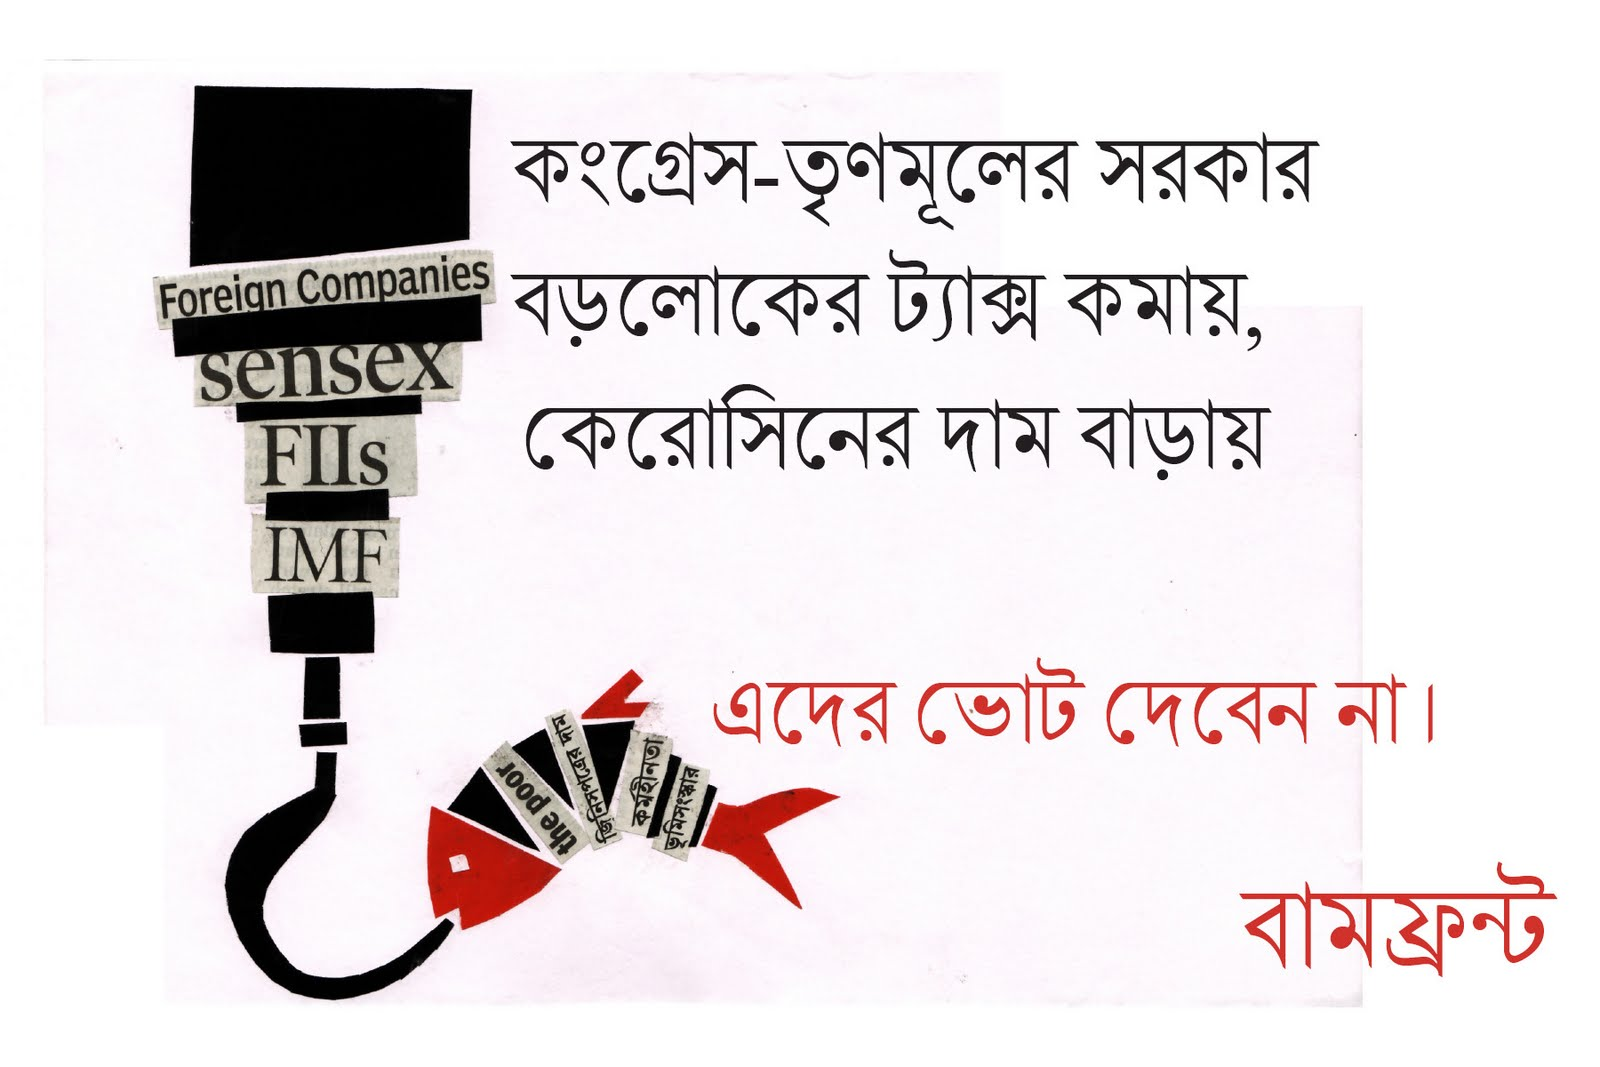 GOURANGA CHATTERJEE: CONGRESS-TMC UPA GOVERNMENT SERVES THE VESTED ...